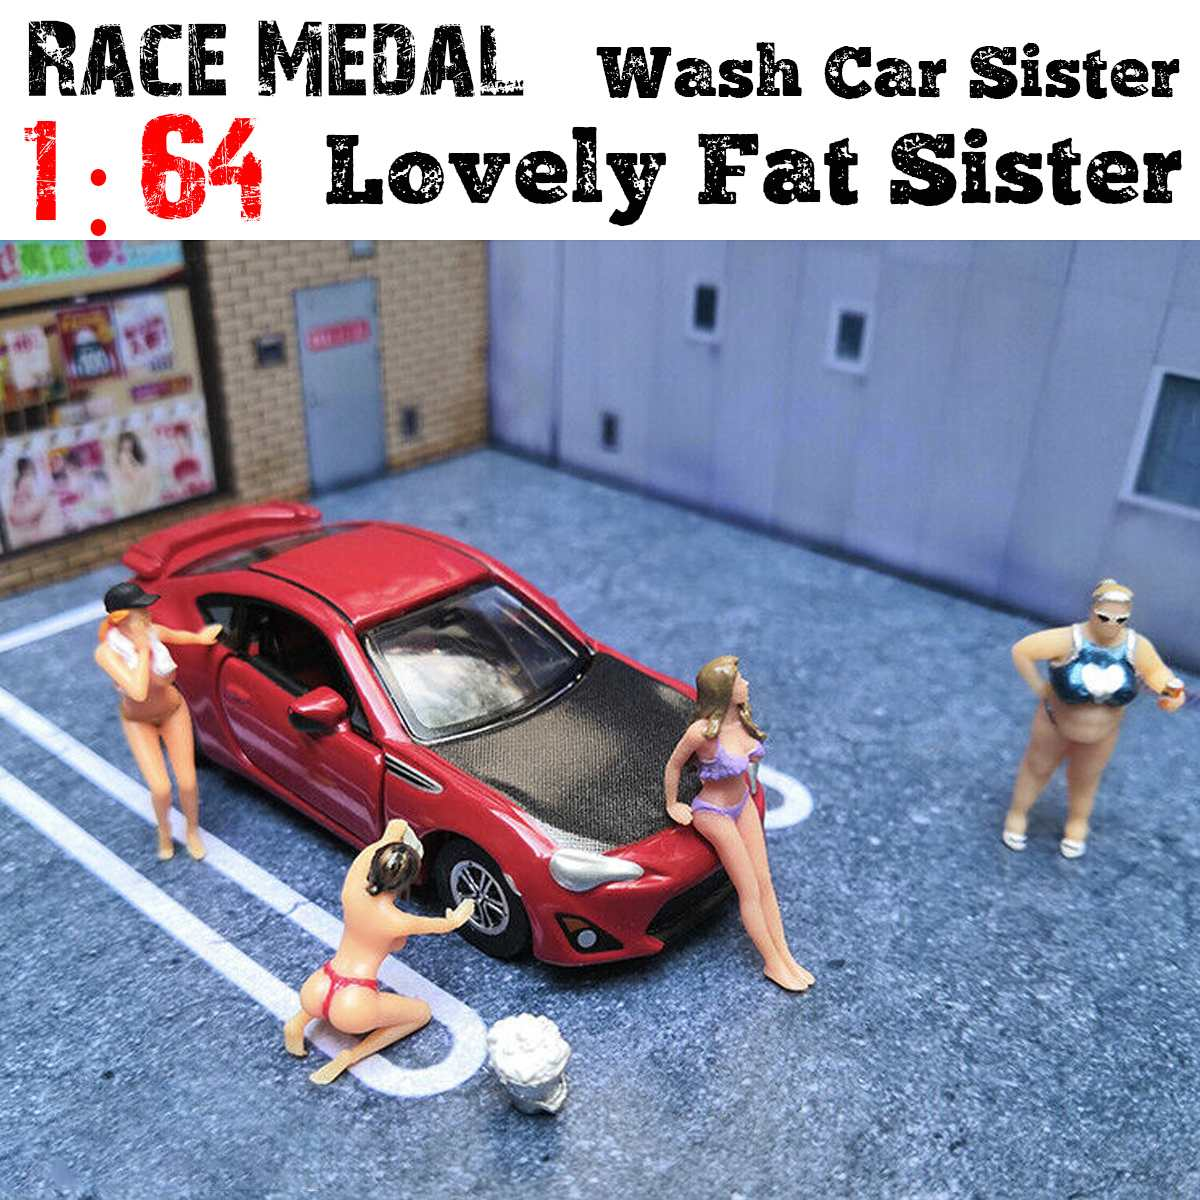 Race Medal 1:64 Figure Diorama Car Wash Sister Bikini Lovely Fat Sister Scenario Model For Matchbox For Model Lover Toys